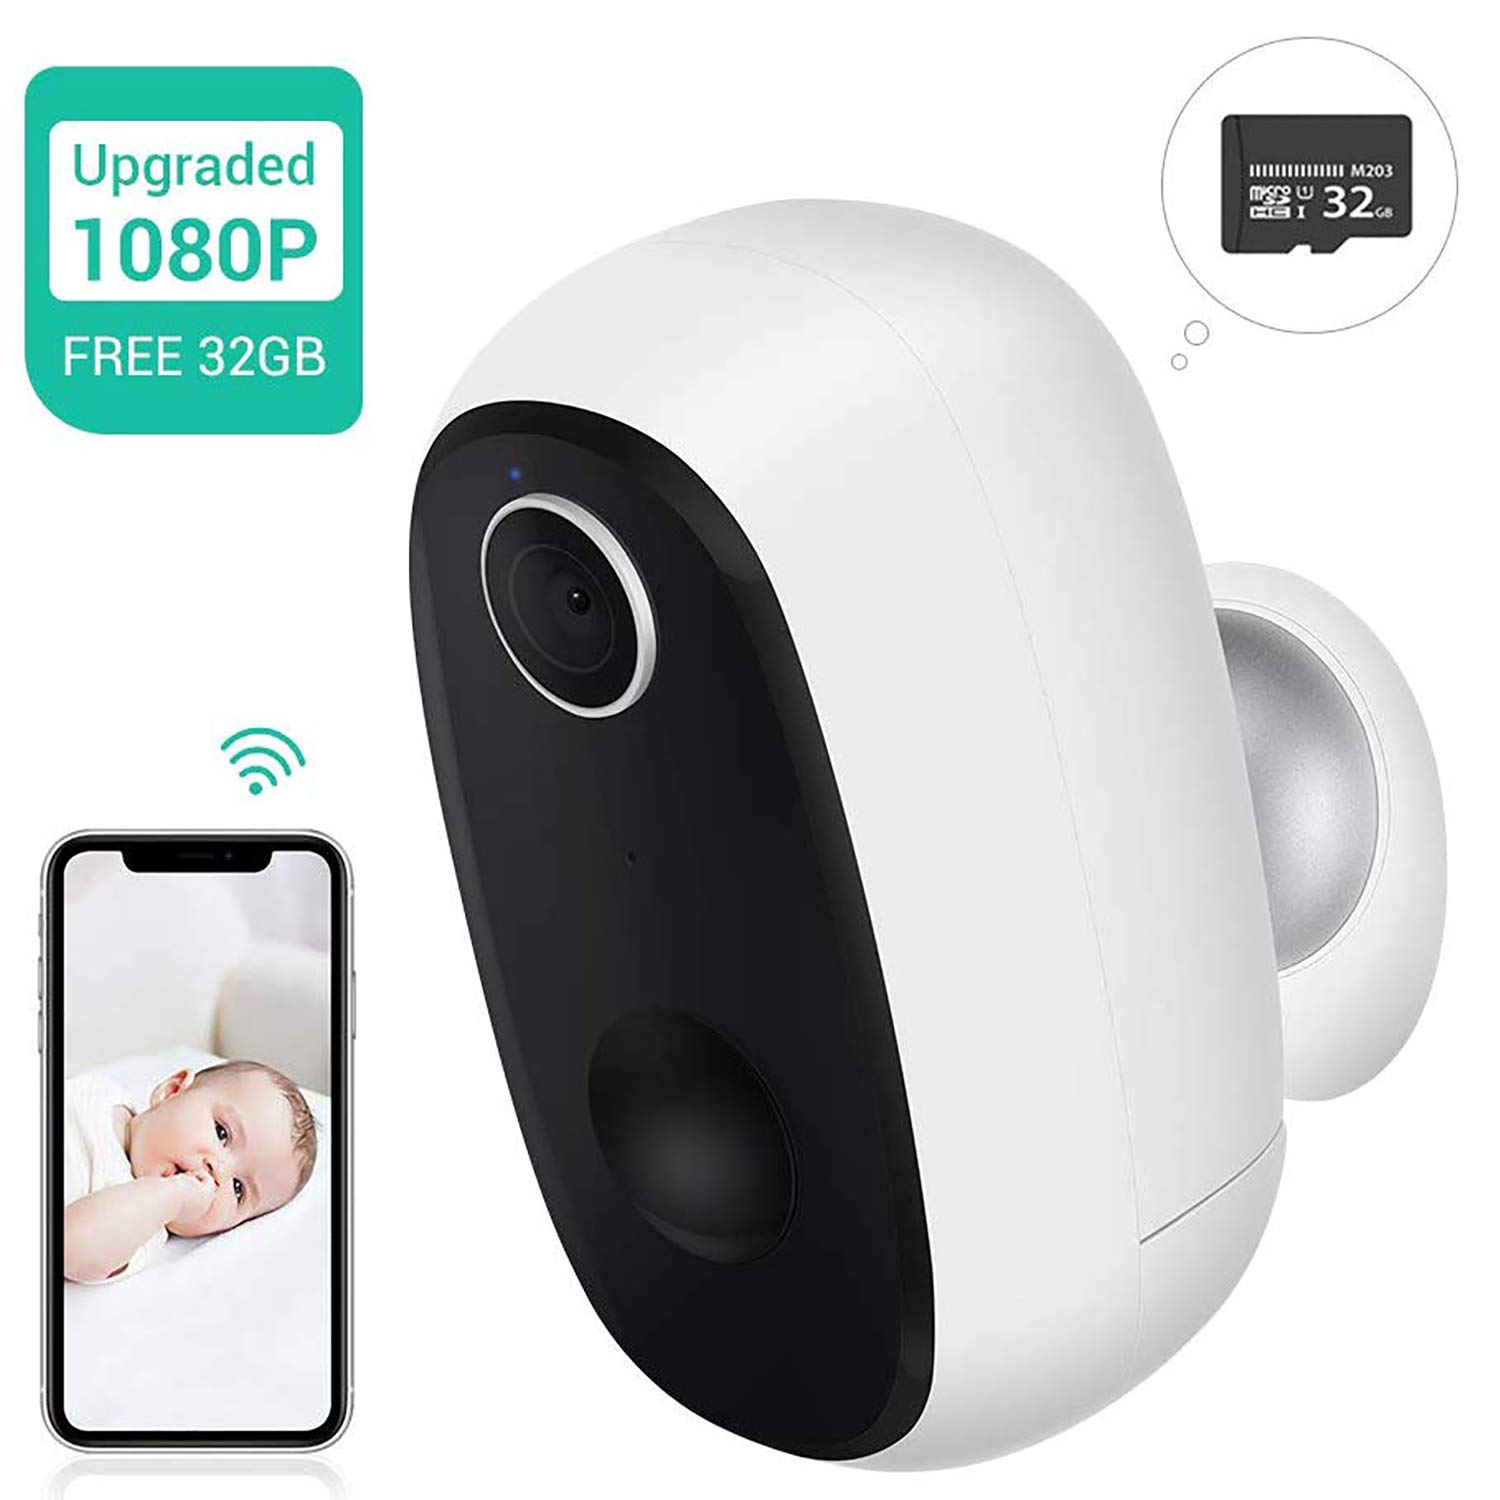 Great Security Camera with good coverage